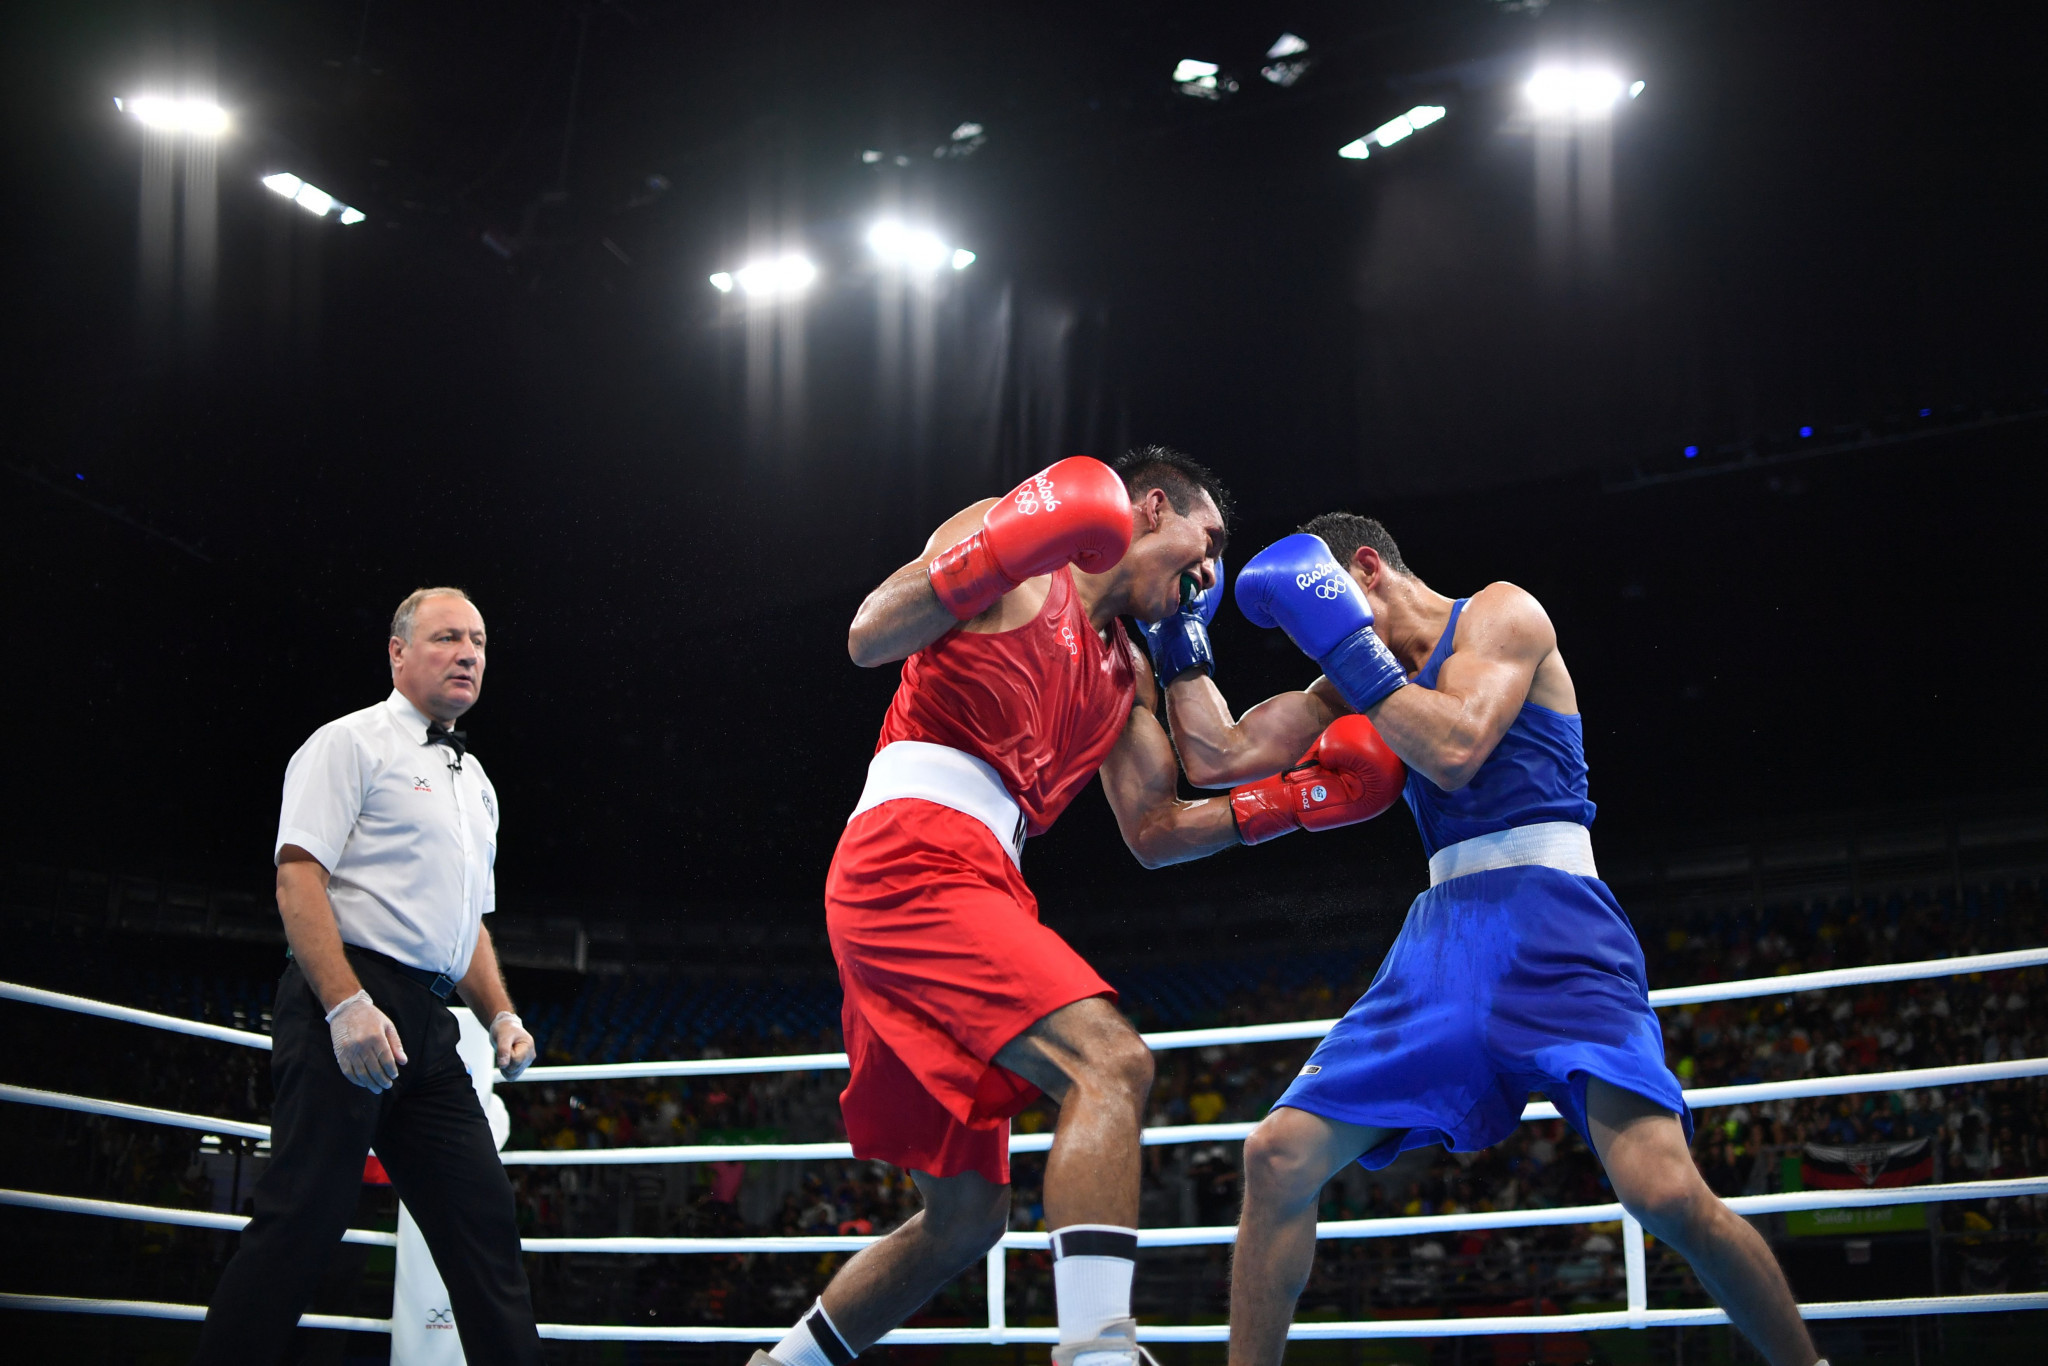 Americas Olympic boxing qualifier cancelled because of COVID-19 crisis